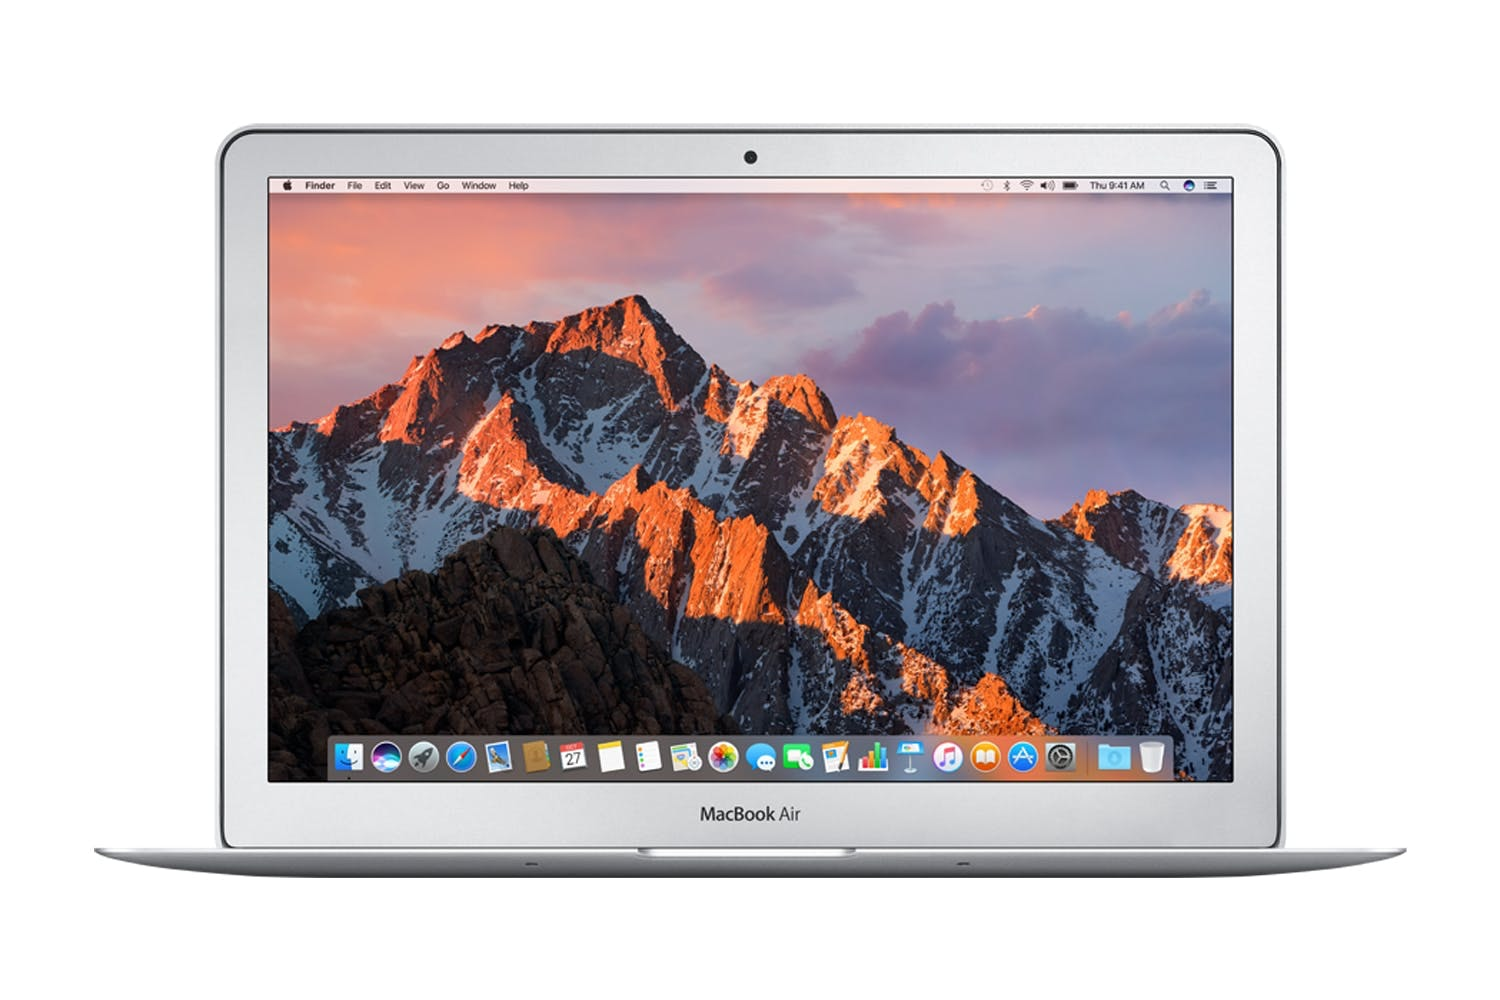 Apple MacBook Air 13"